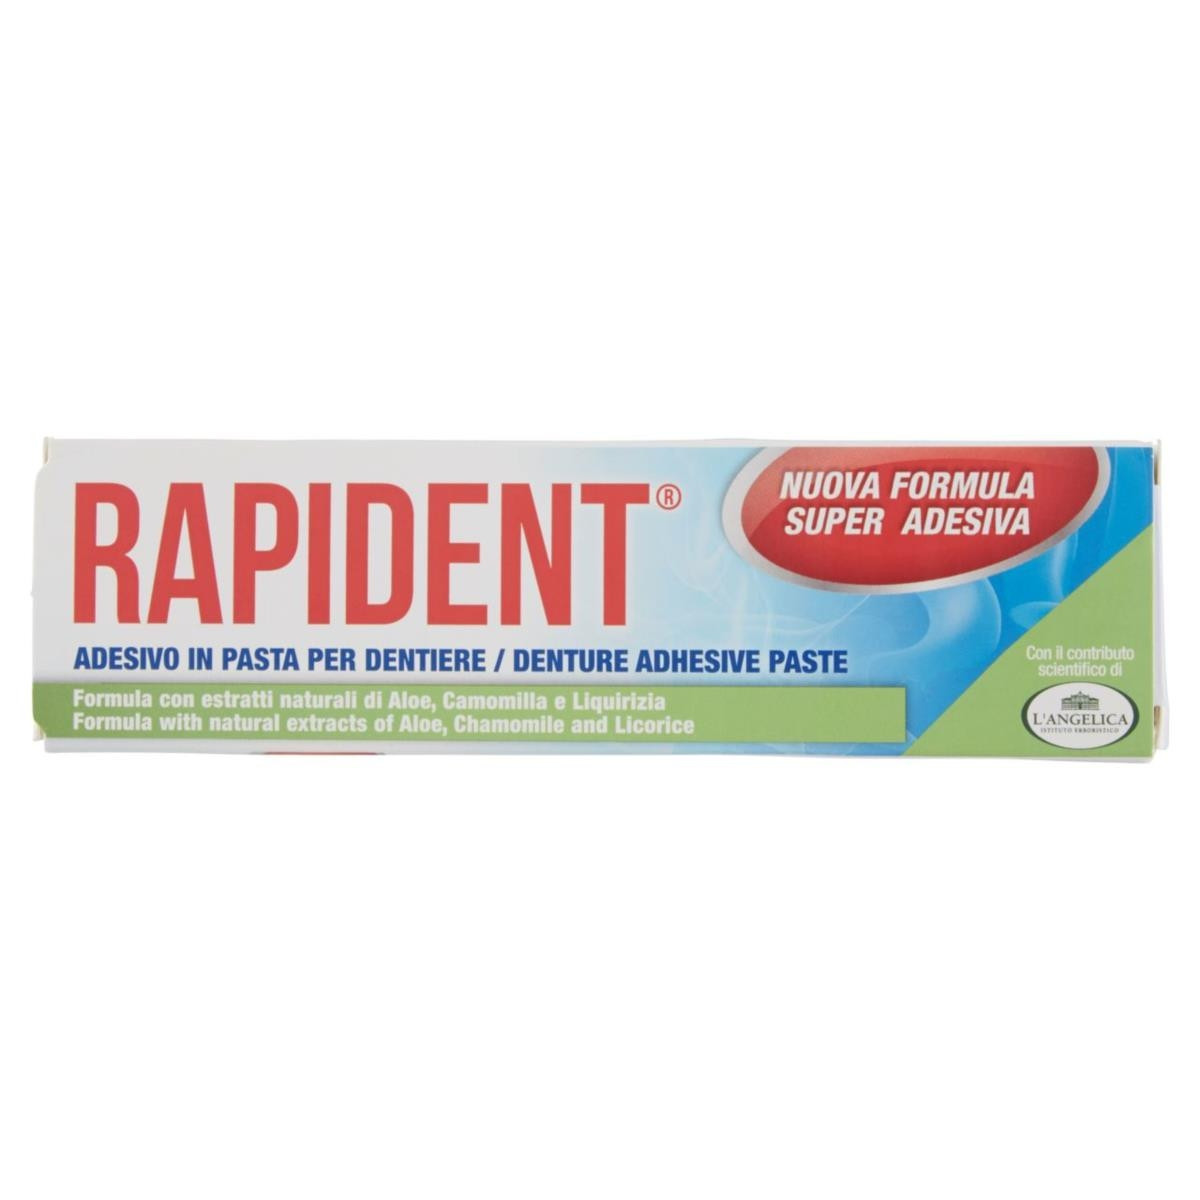 RAPIDENT ADHESIVE PASTE 40G